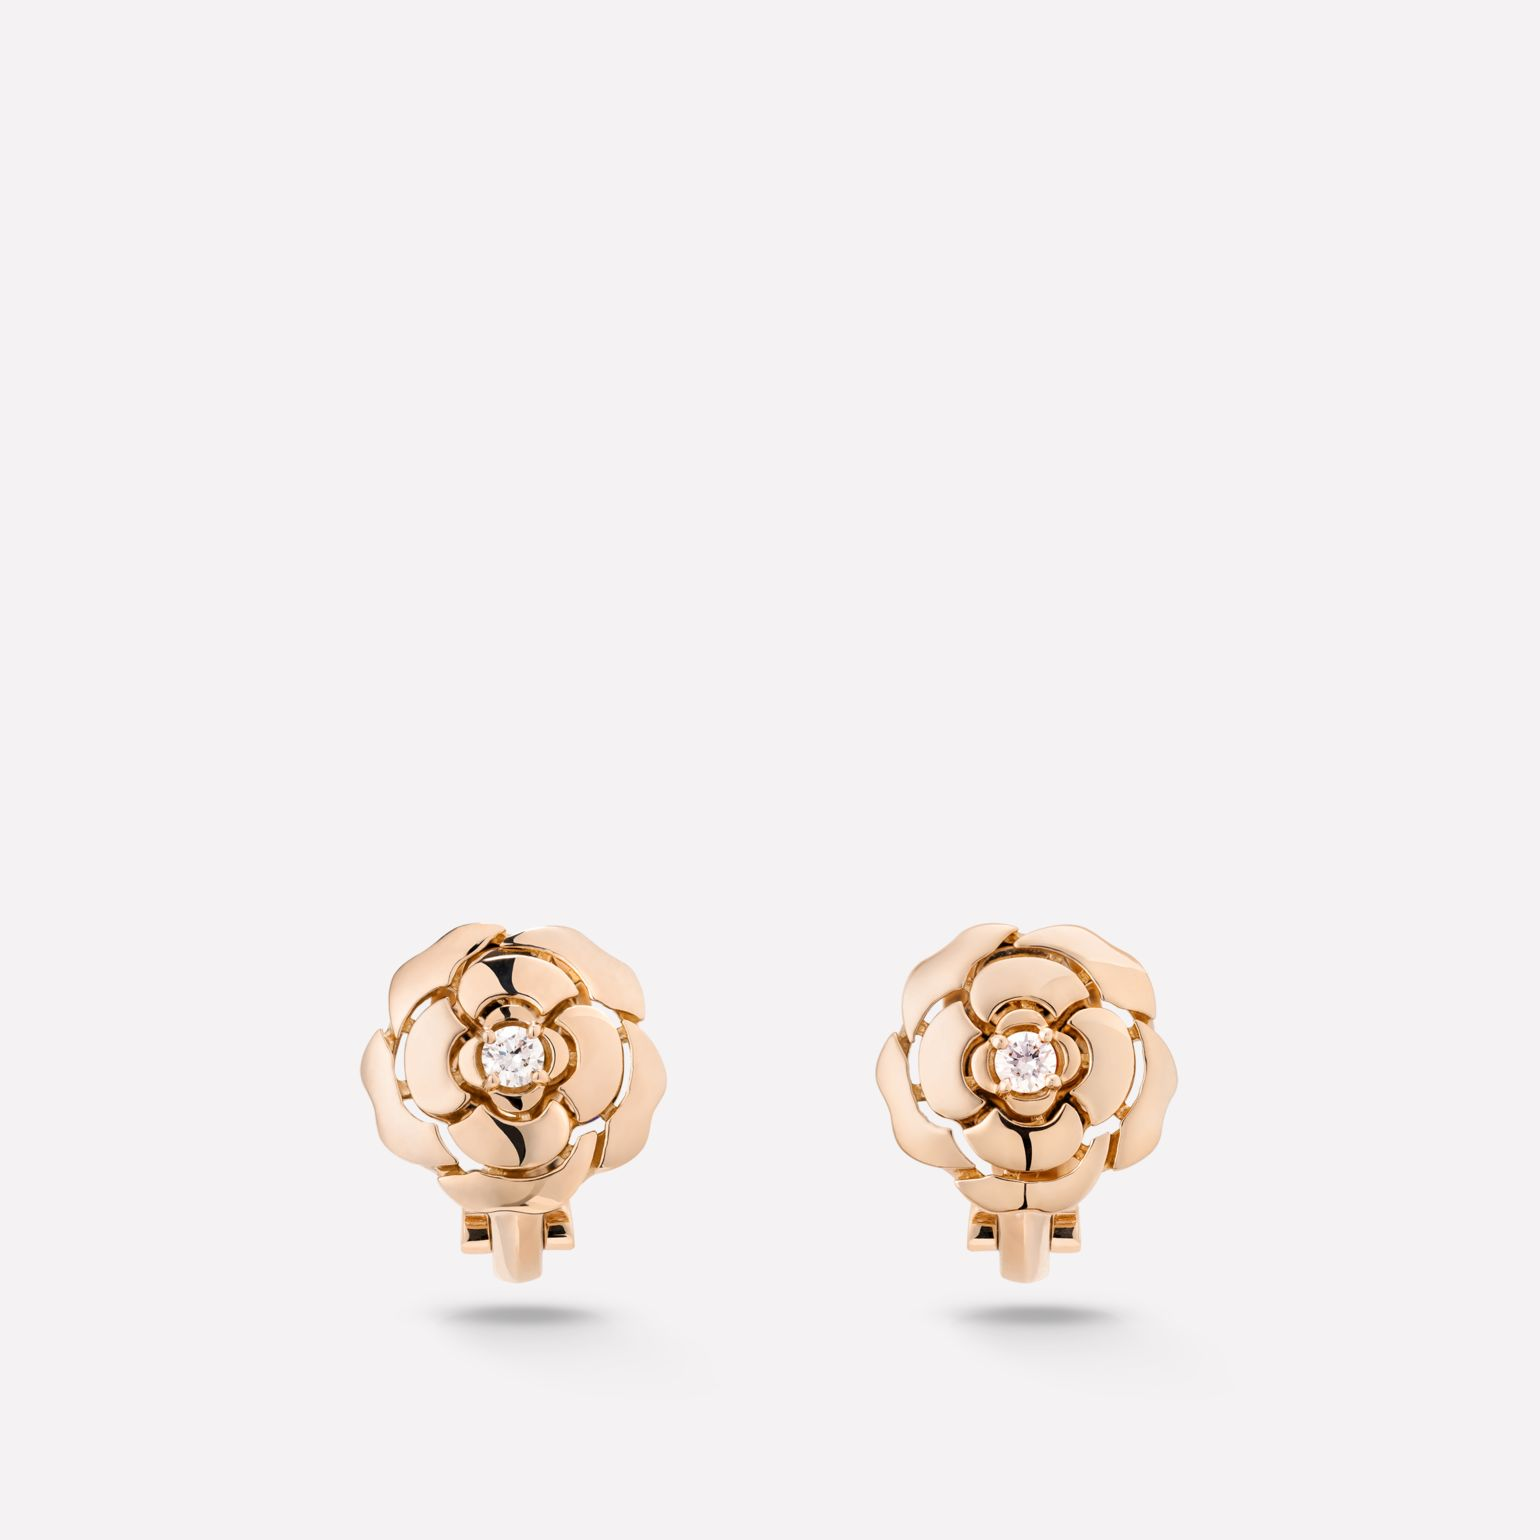 Extrait de Camélia earrings Extrait de Camélia ear studs in 18K pink gold with center diamonds